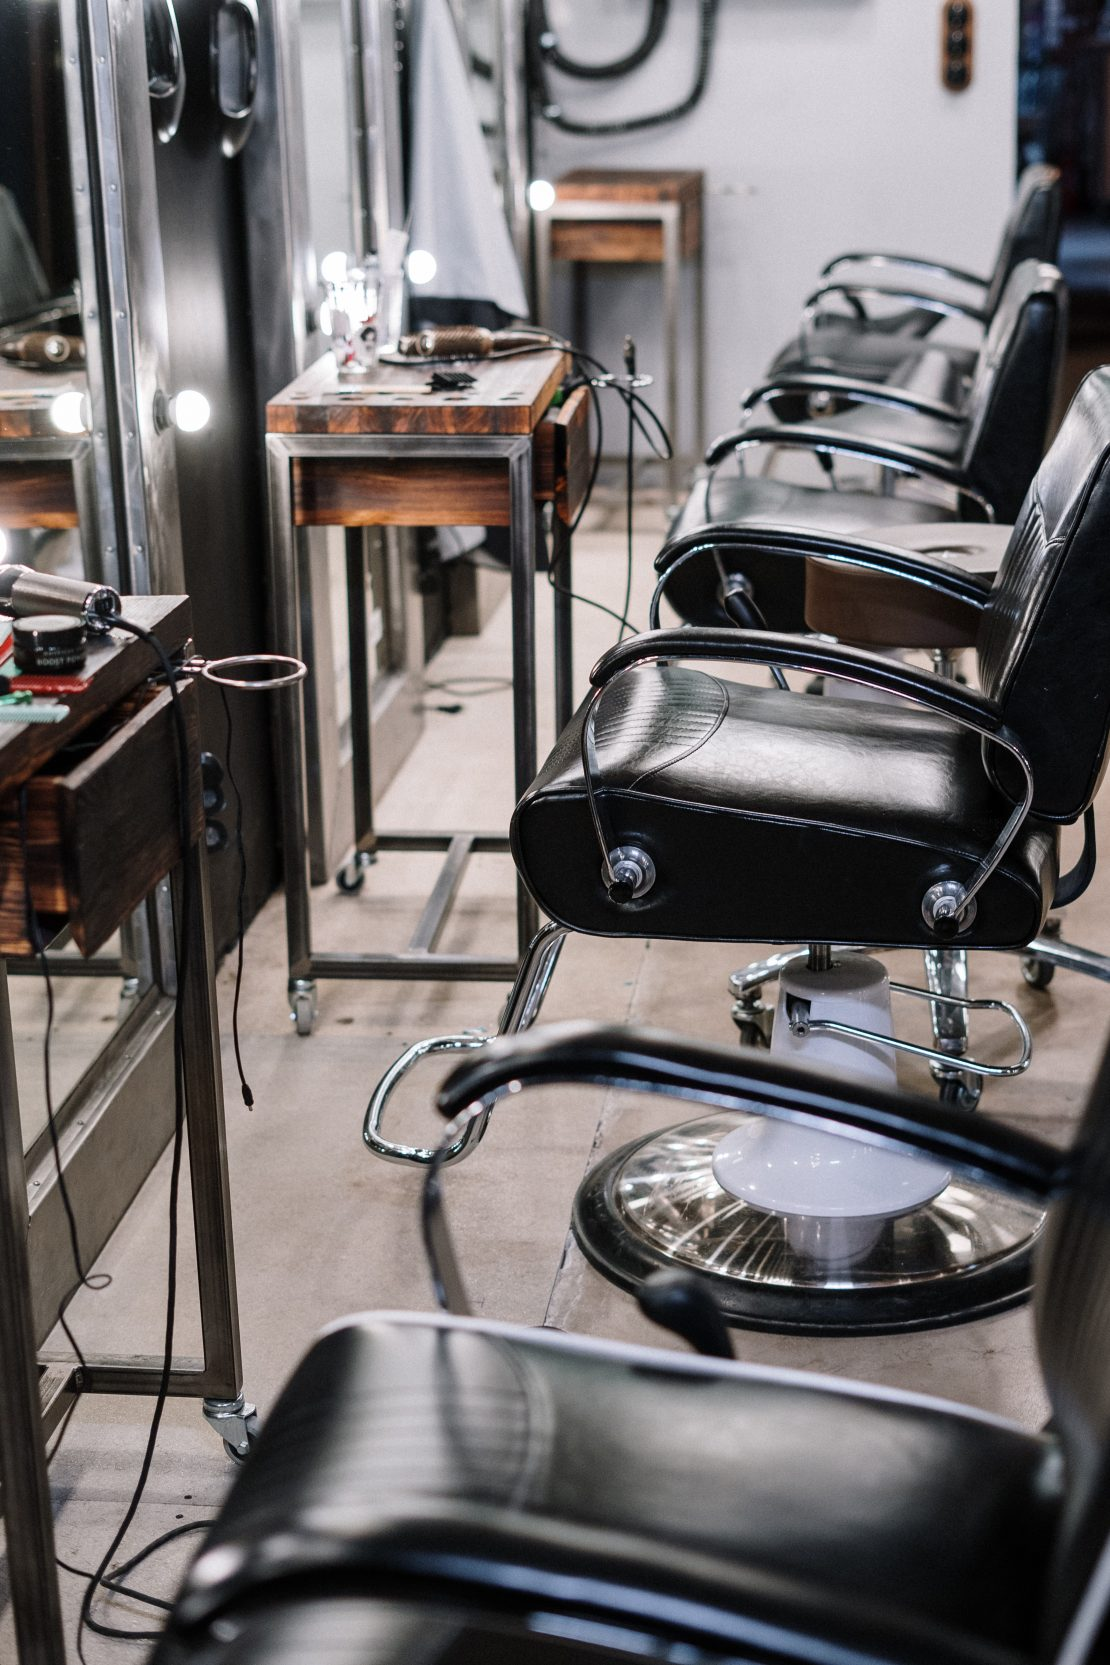 10 Skills Every Cosmetologist Should Master | Learn more information about Health & Style's Cosmetology program by calling us today at 1-844-94-STYLE.